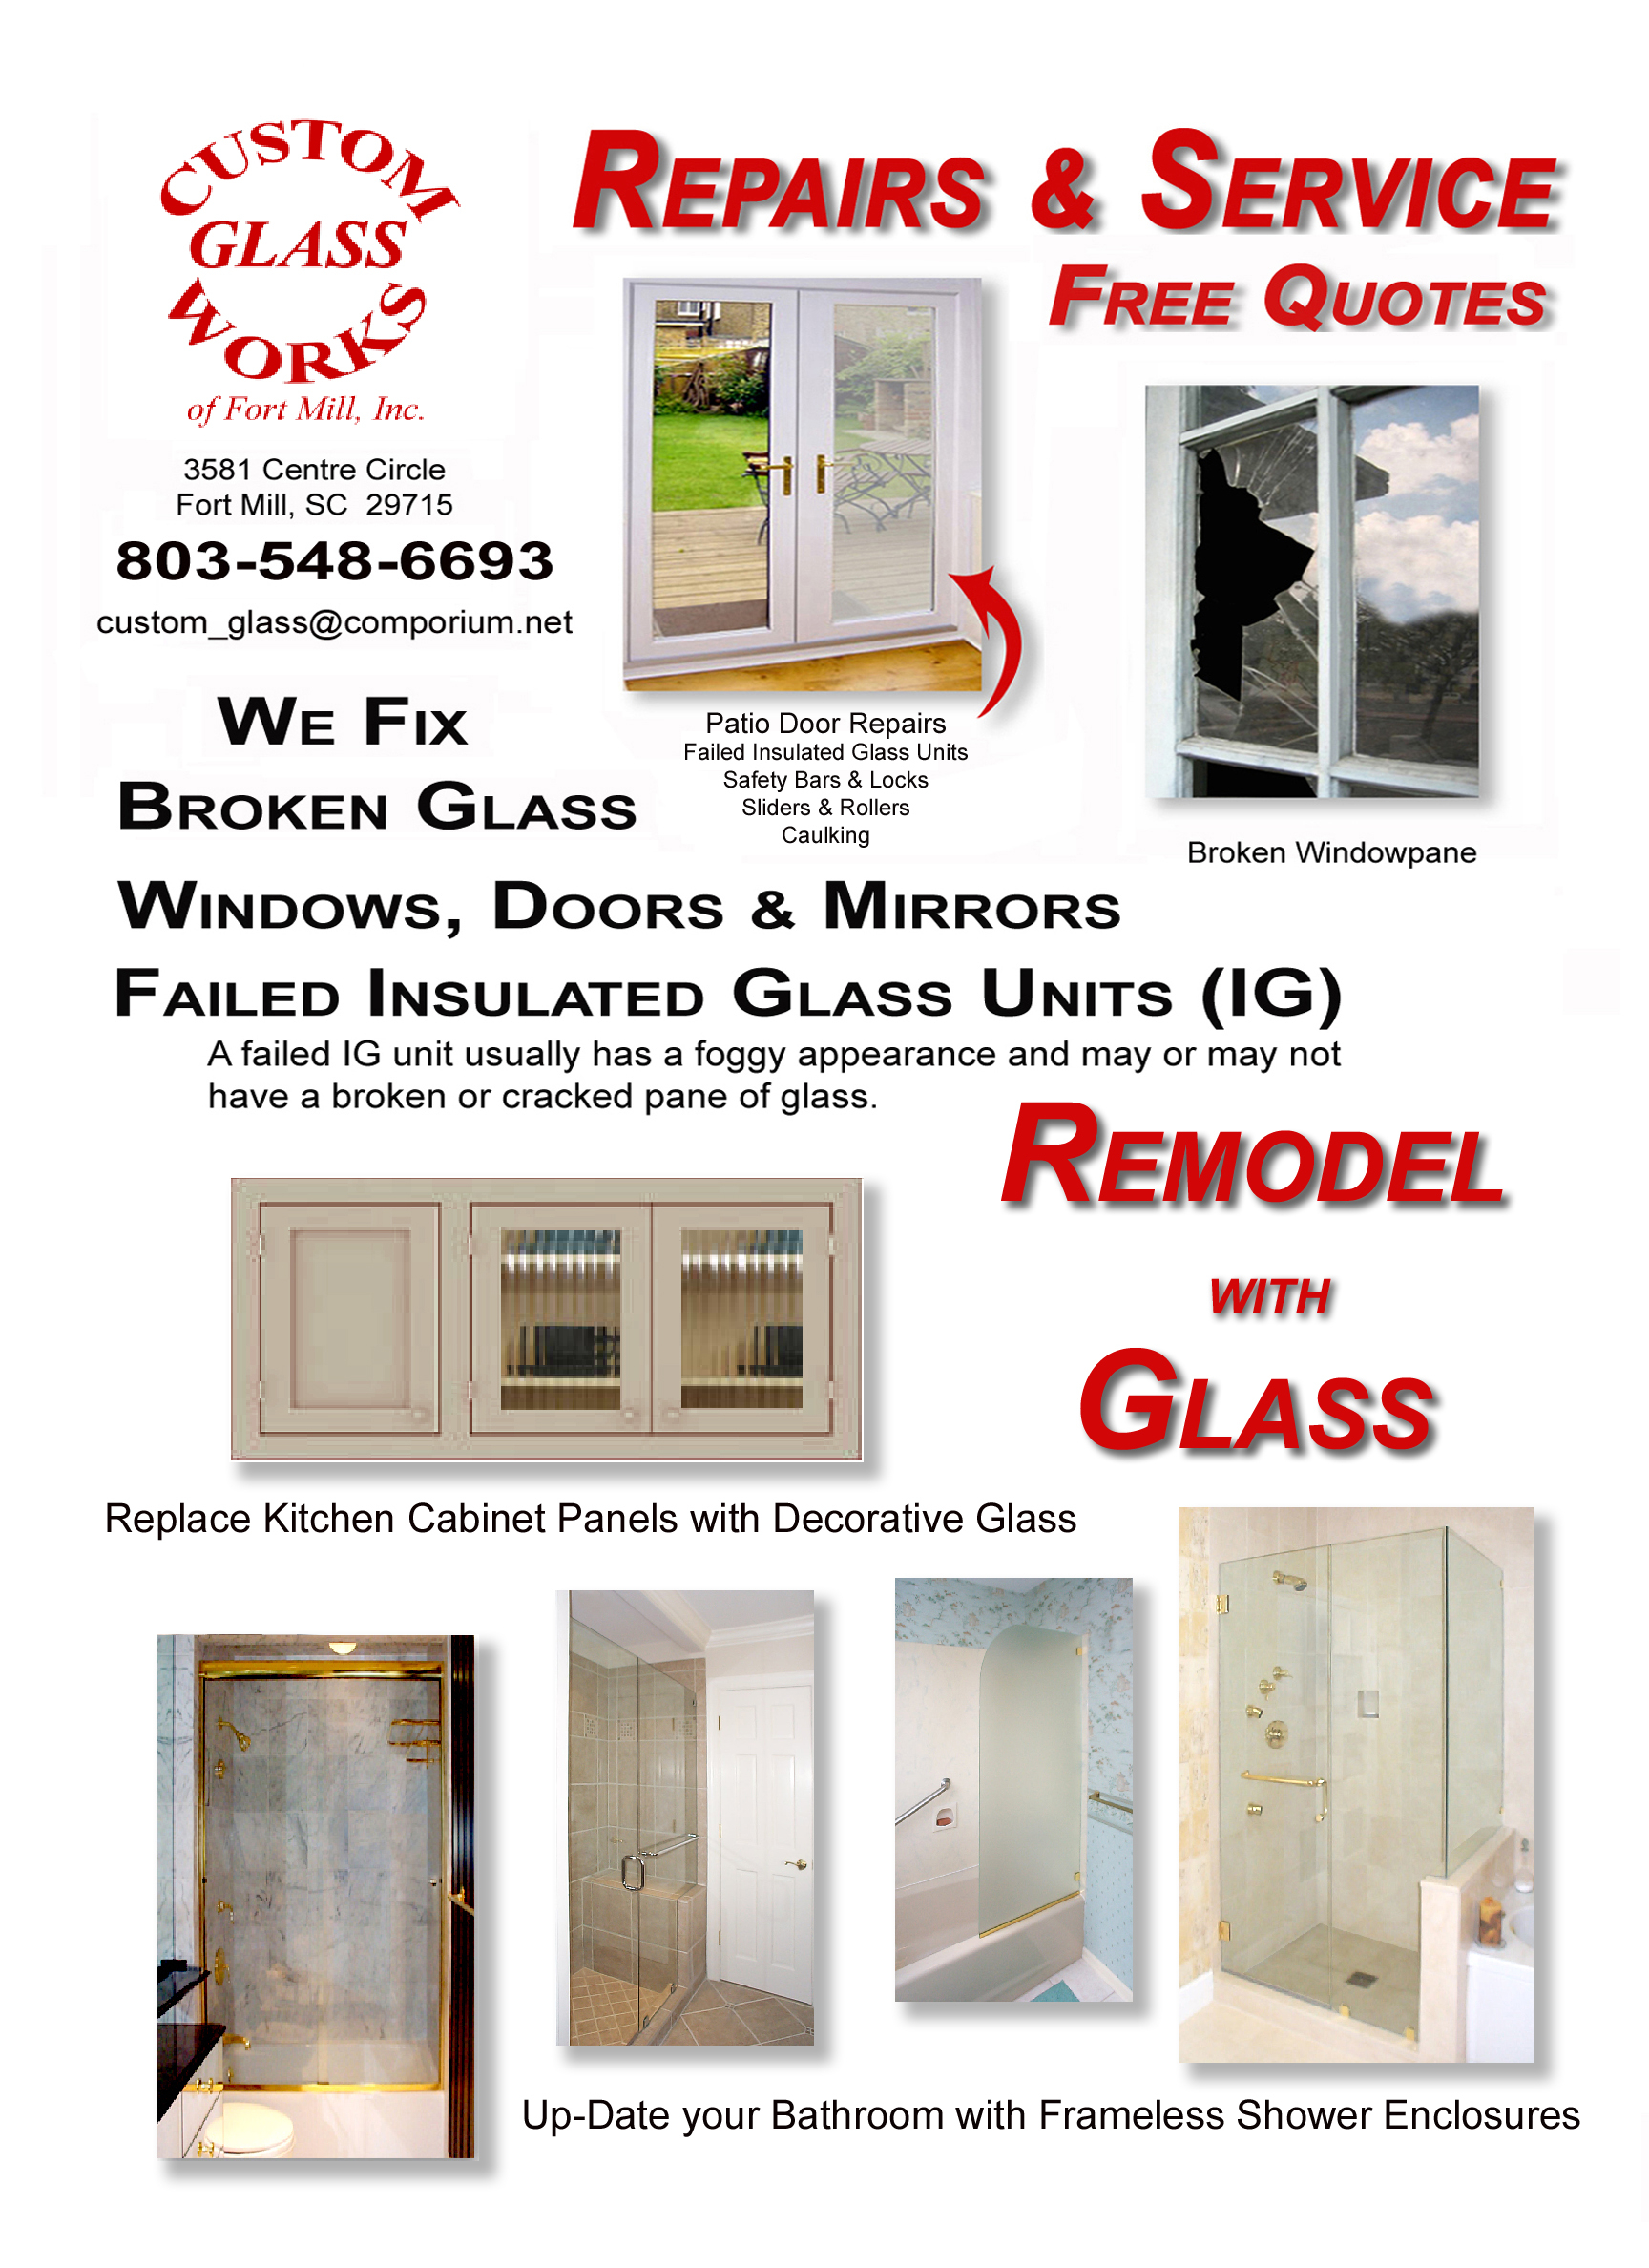 Custom Glass Works Of Fort Mill Sc Serving North And